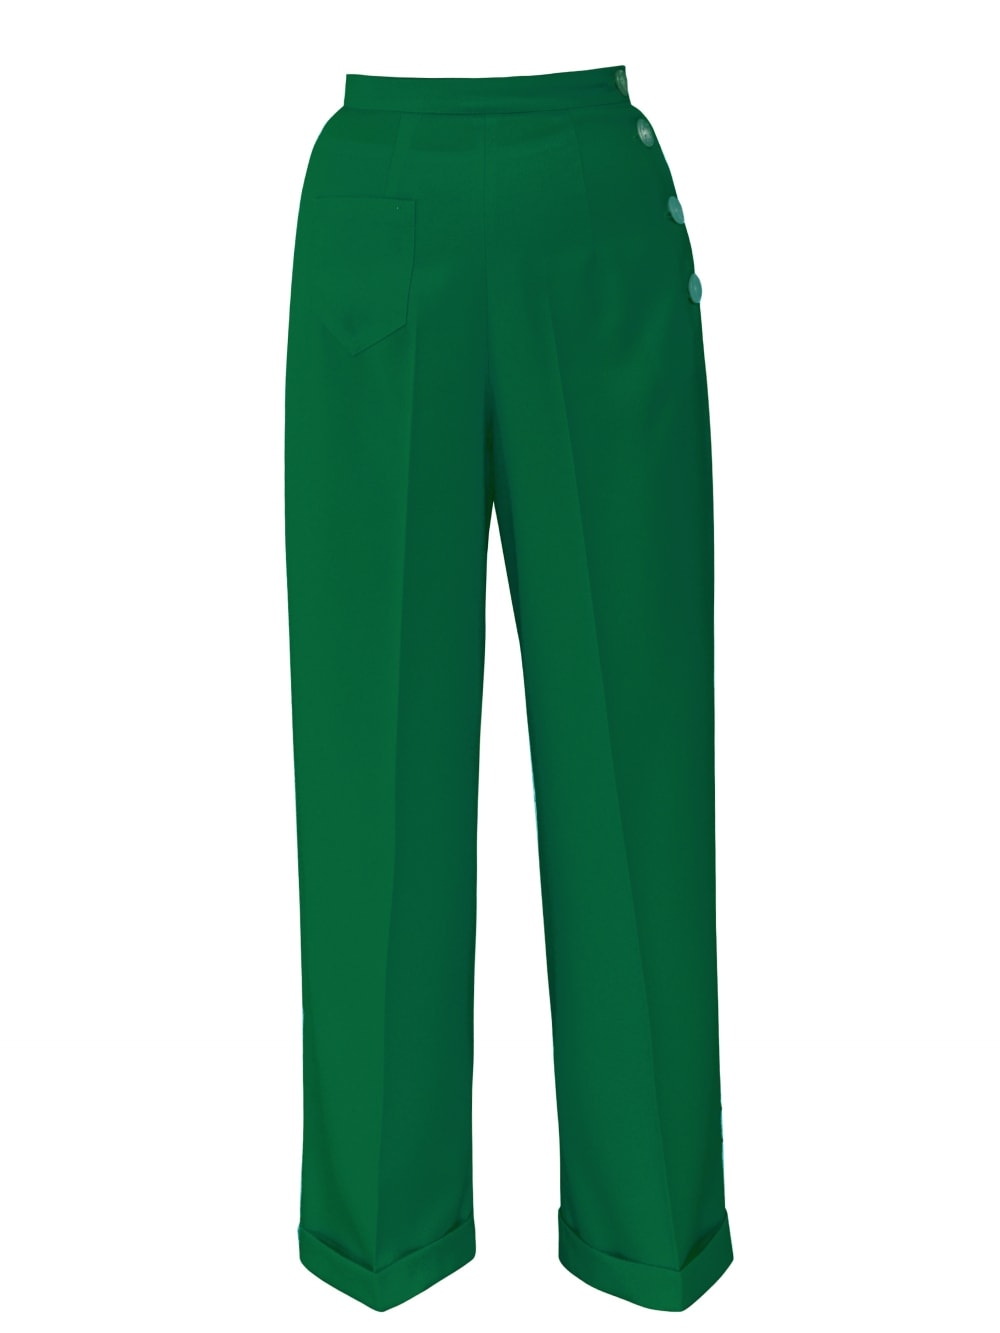 8d2c53d41cdc63 Katharine Trousers Crepe Emerald From Vivien Of Holloway